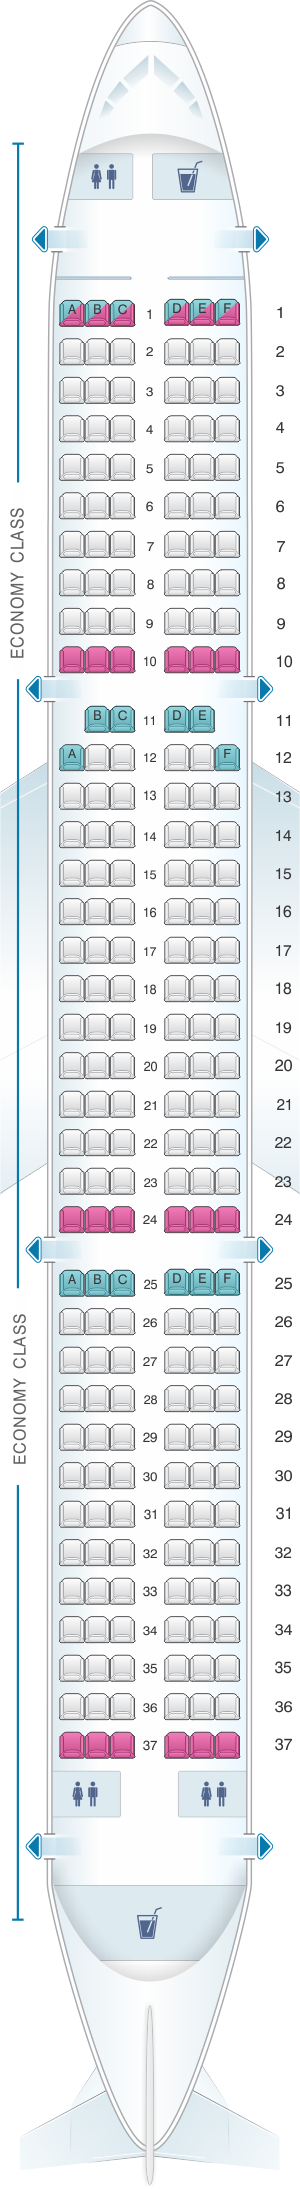 Seat map for Jetstar Airways Airbus A321 220pax